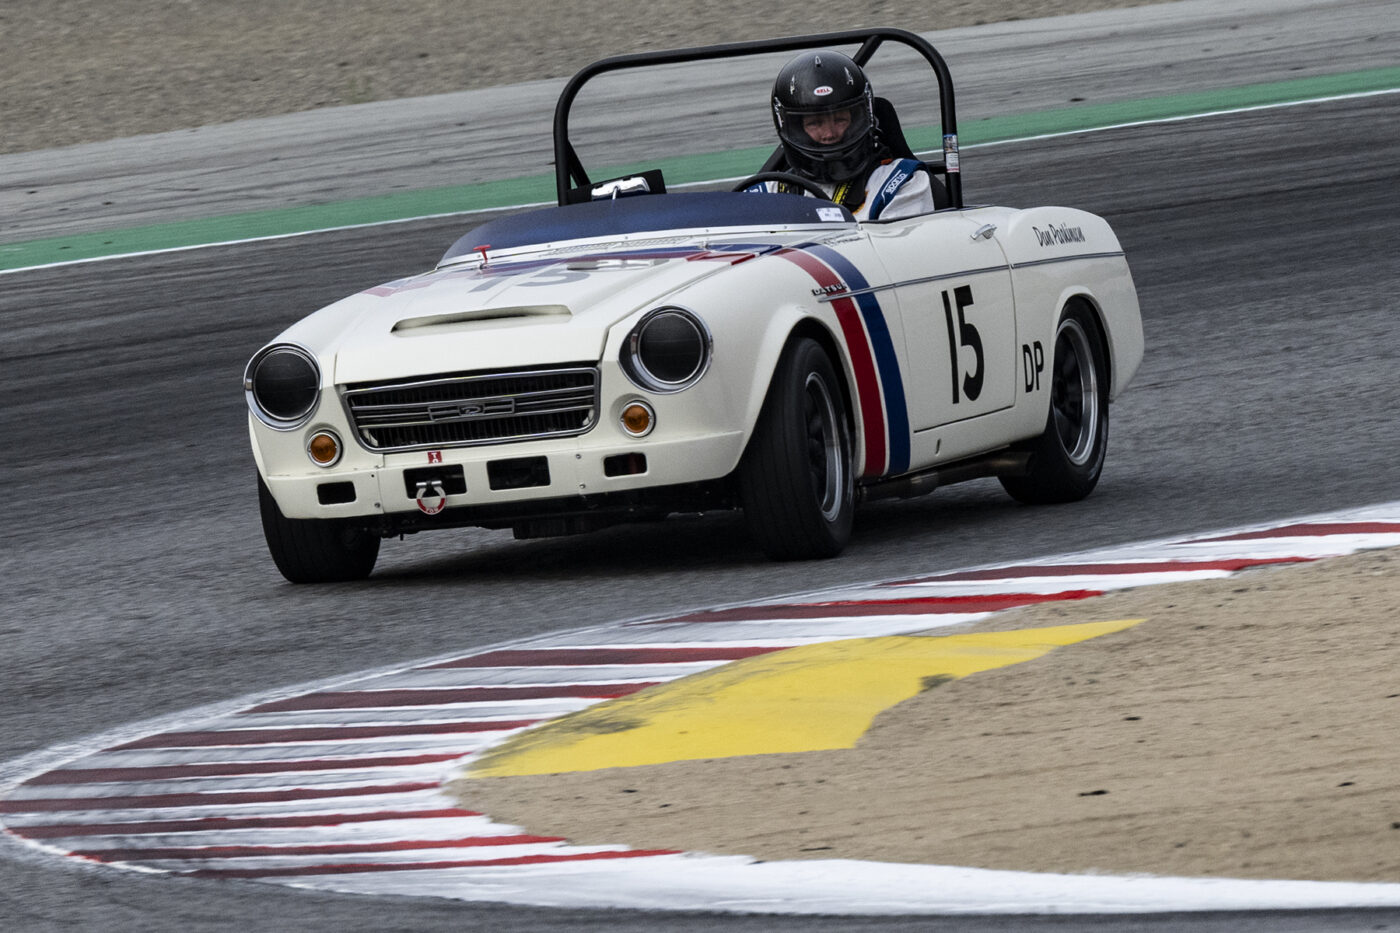 Greg Walsh in his 1966 Datsun SPL311 Roadster 2000 in turn two Sunday morning. ©2021 Dennis Gray